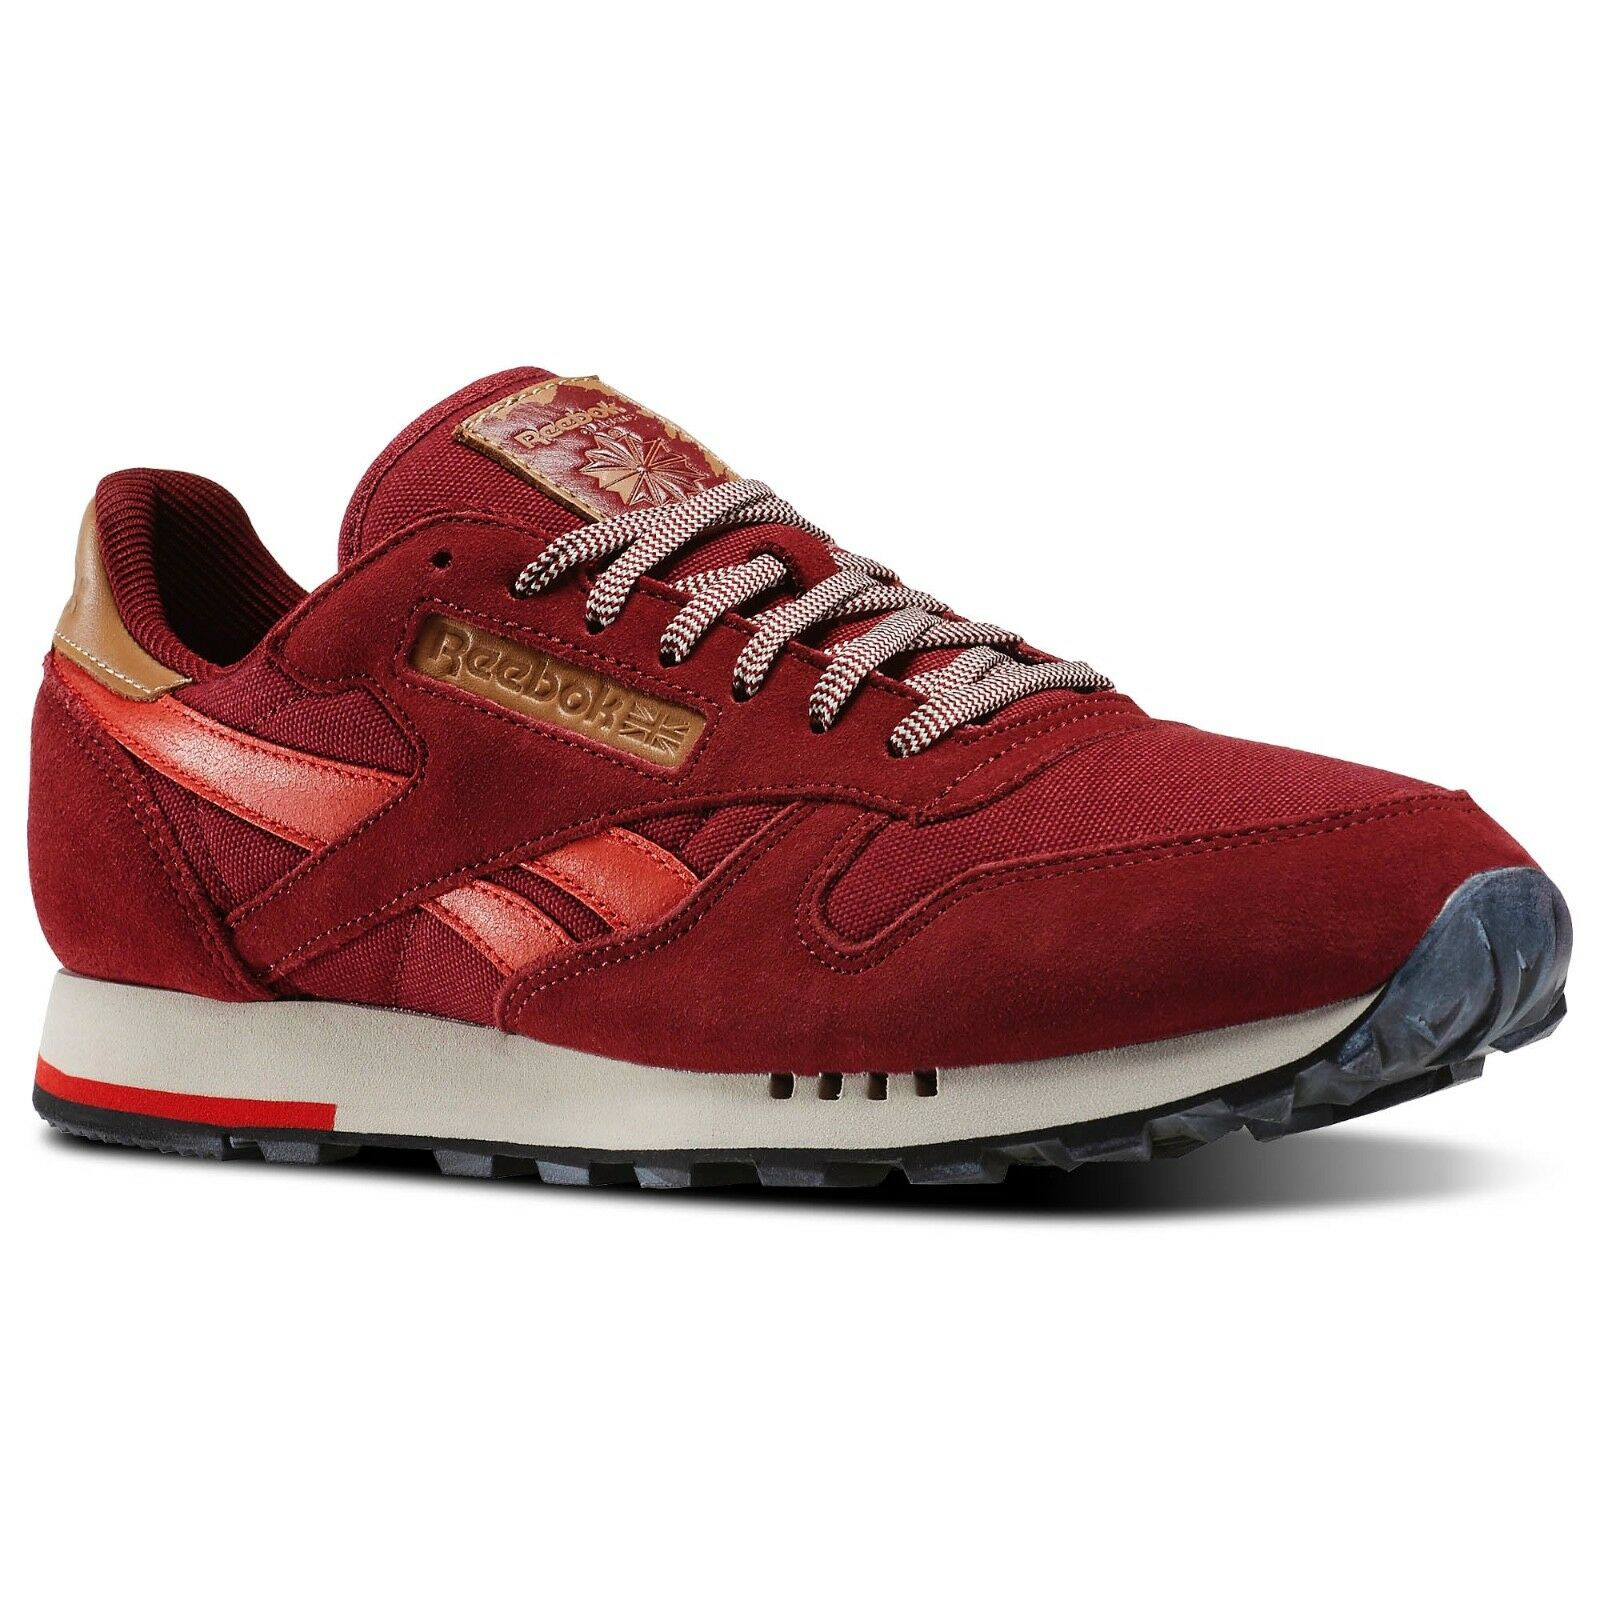 Reebok Hombre's Hombre's Hombre's Classic Leather Utility Trainers Running Zapatos - V72845 2bb579